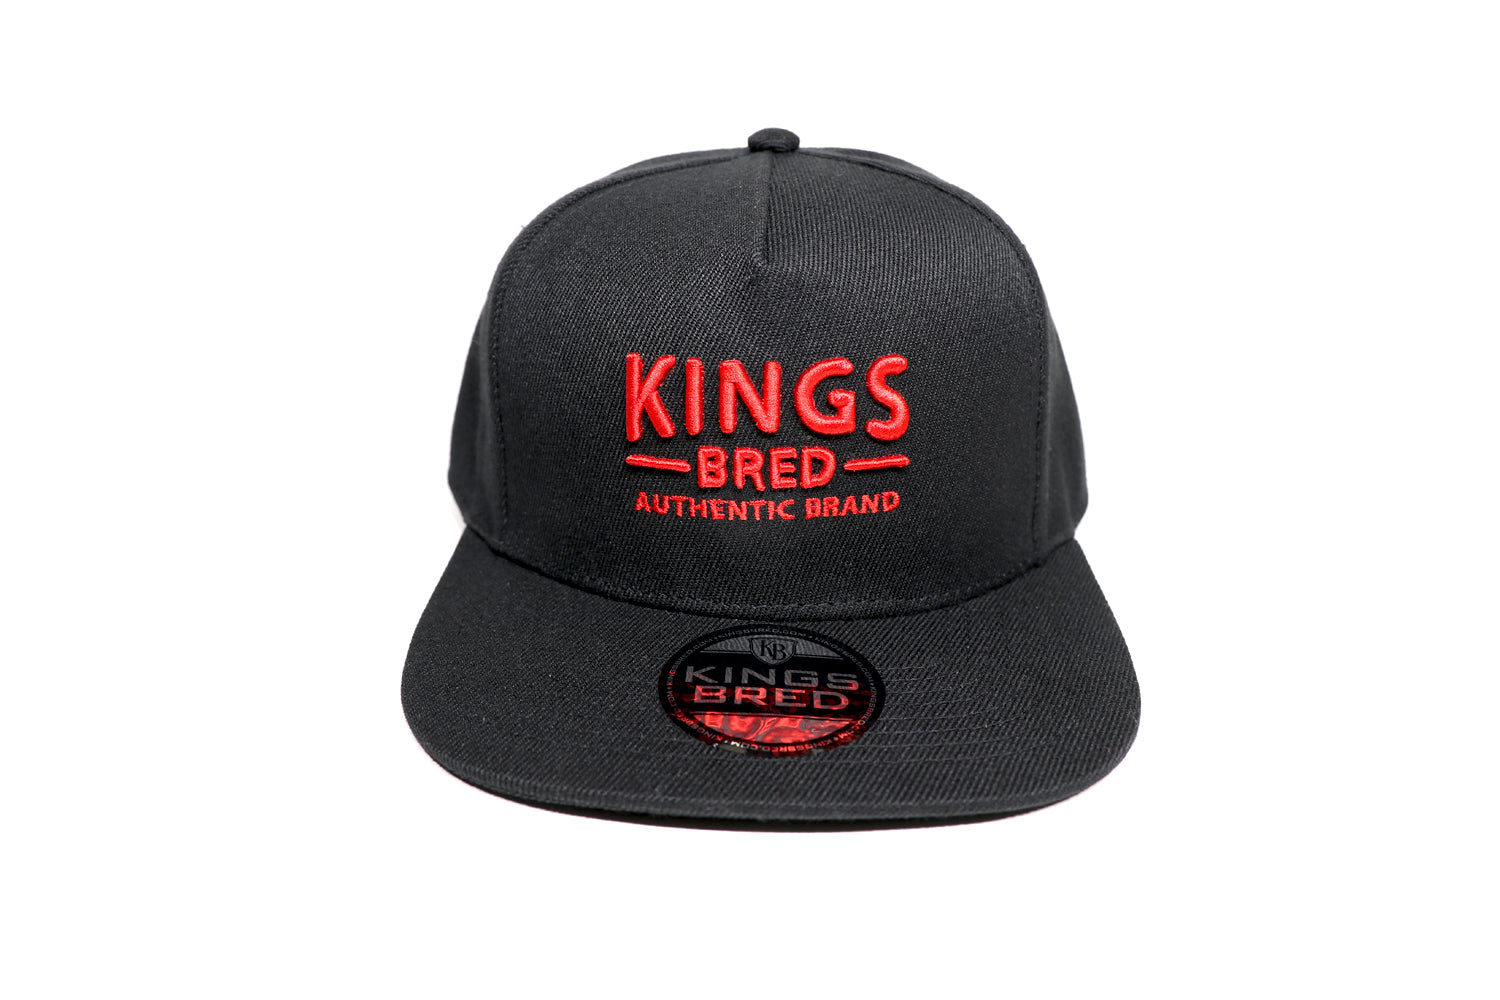 Authentic Brand - Bred Classic Snapback